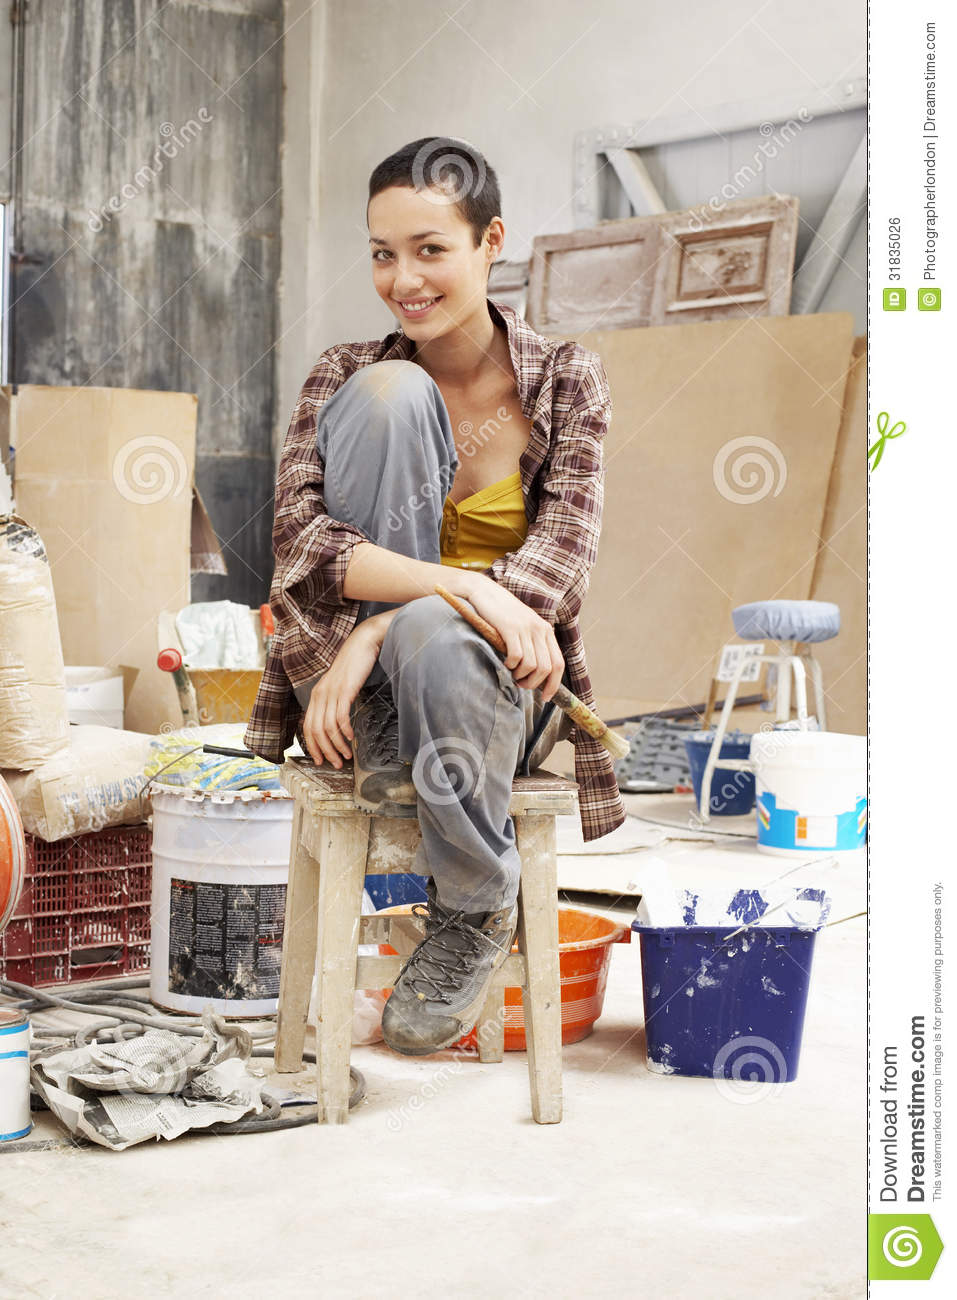 Female Painter Sitting On Stool In Work Site  sc 1 st  Dreamstime.com & Female Painter Sitting On Stool In Work Site Royalty Free Stock ... islam-shia.org